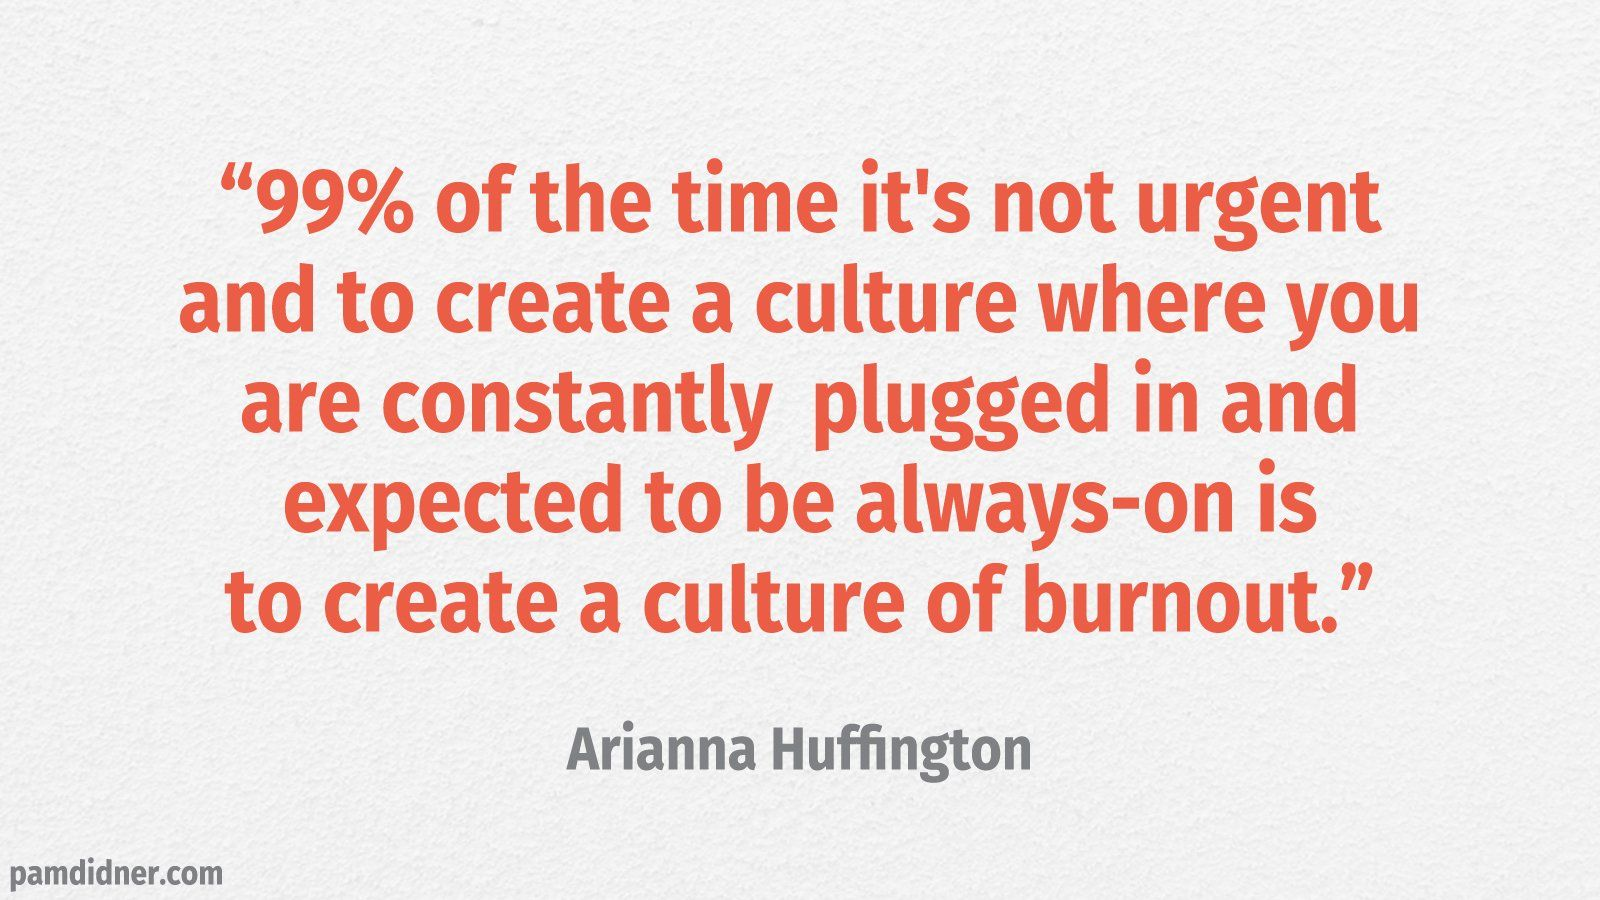 Business Burnoute Quote Arianna Huffington